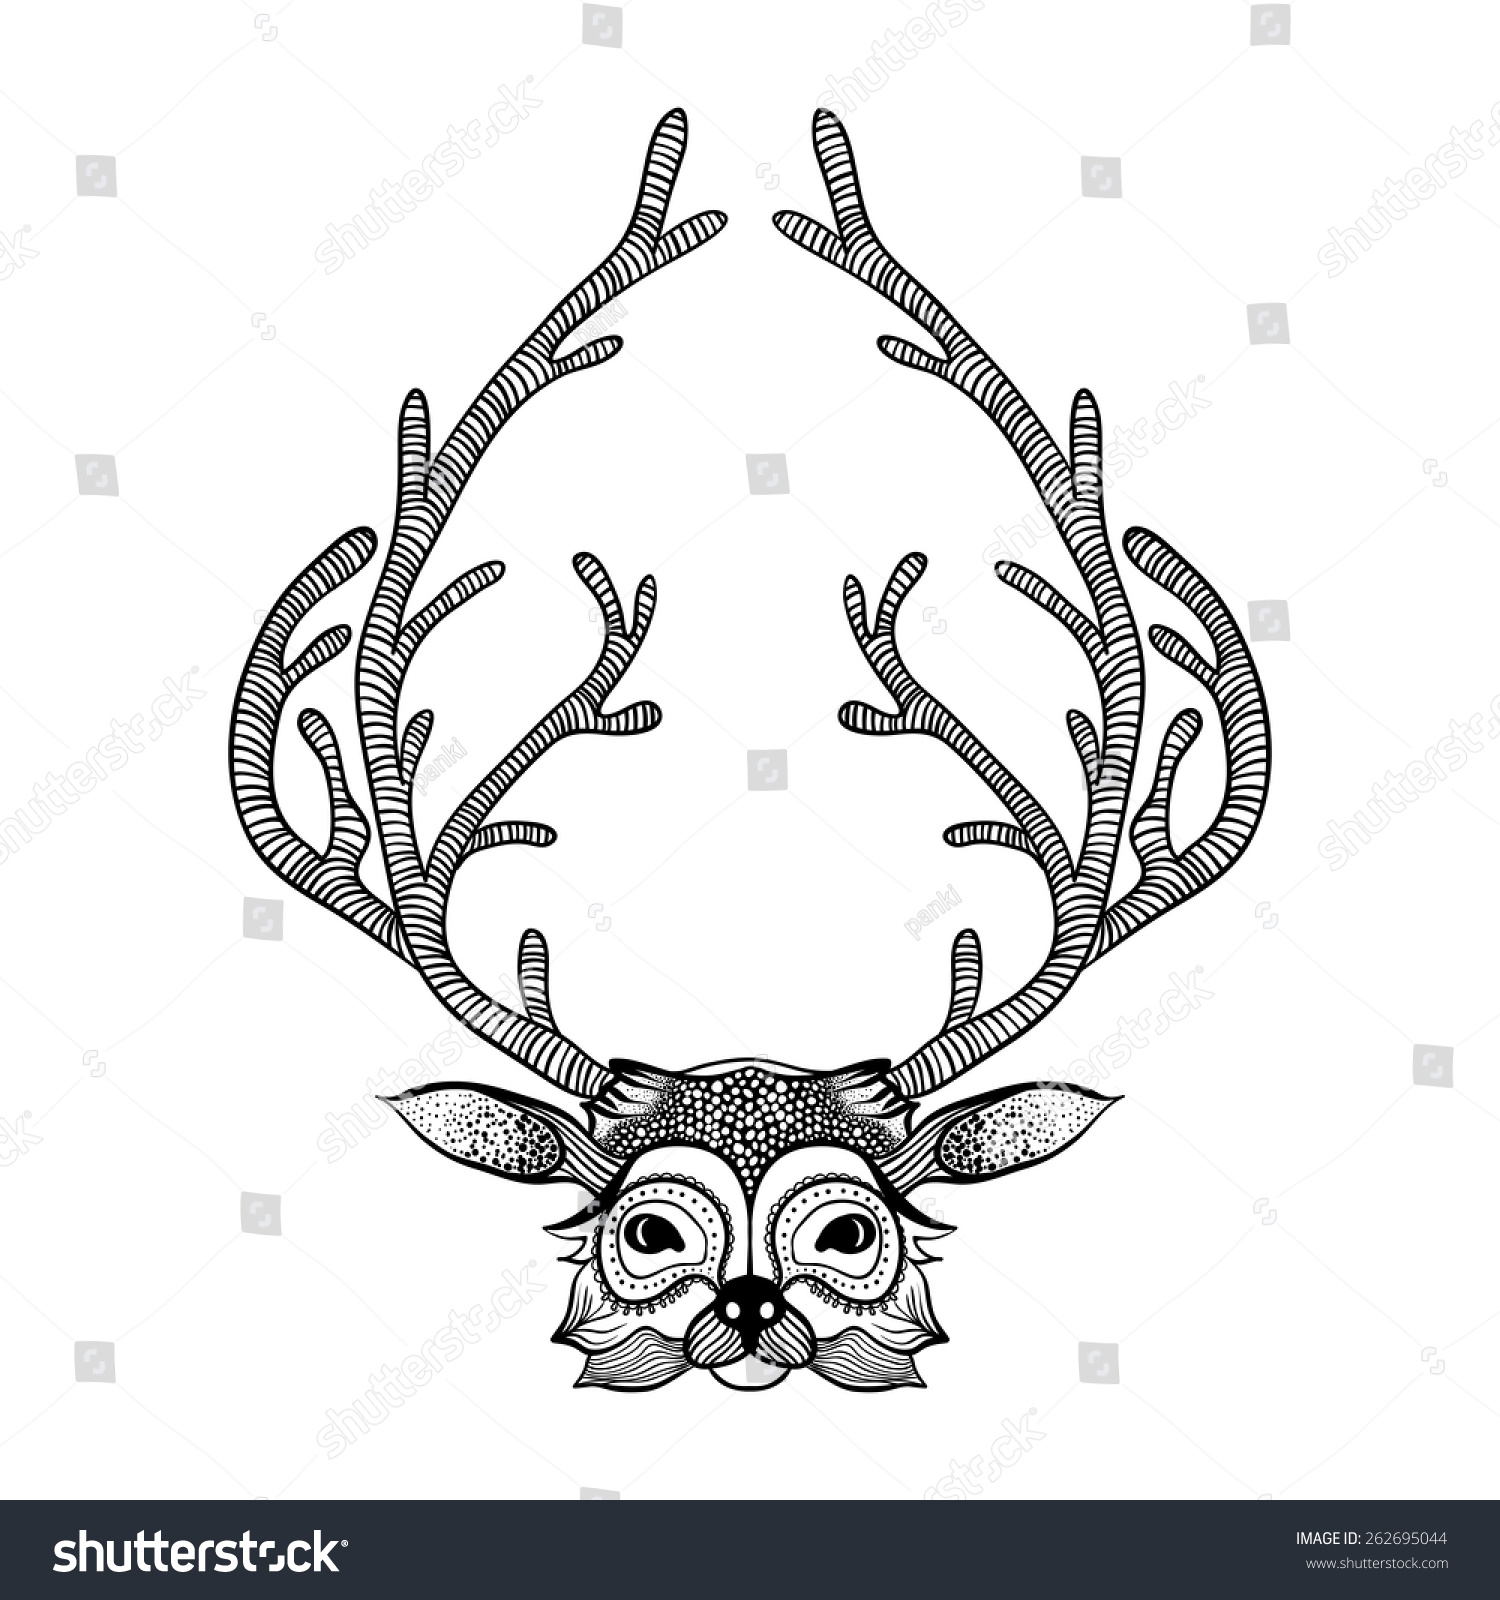 Deer Face Coloring Pages. Zentangle stylized deer face  Hand Drawn tribal totem for adult anti stress coloring pages Royalty free 262695044 Stock